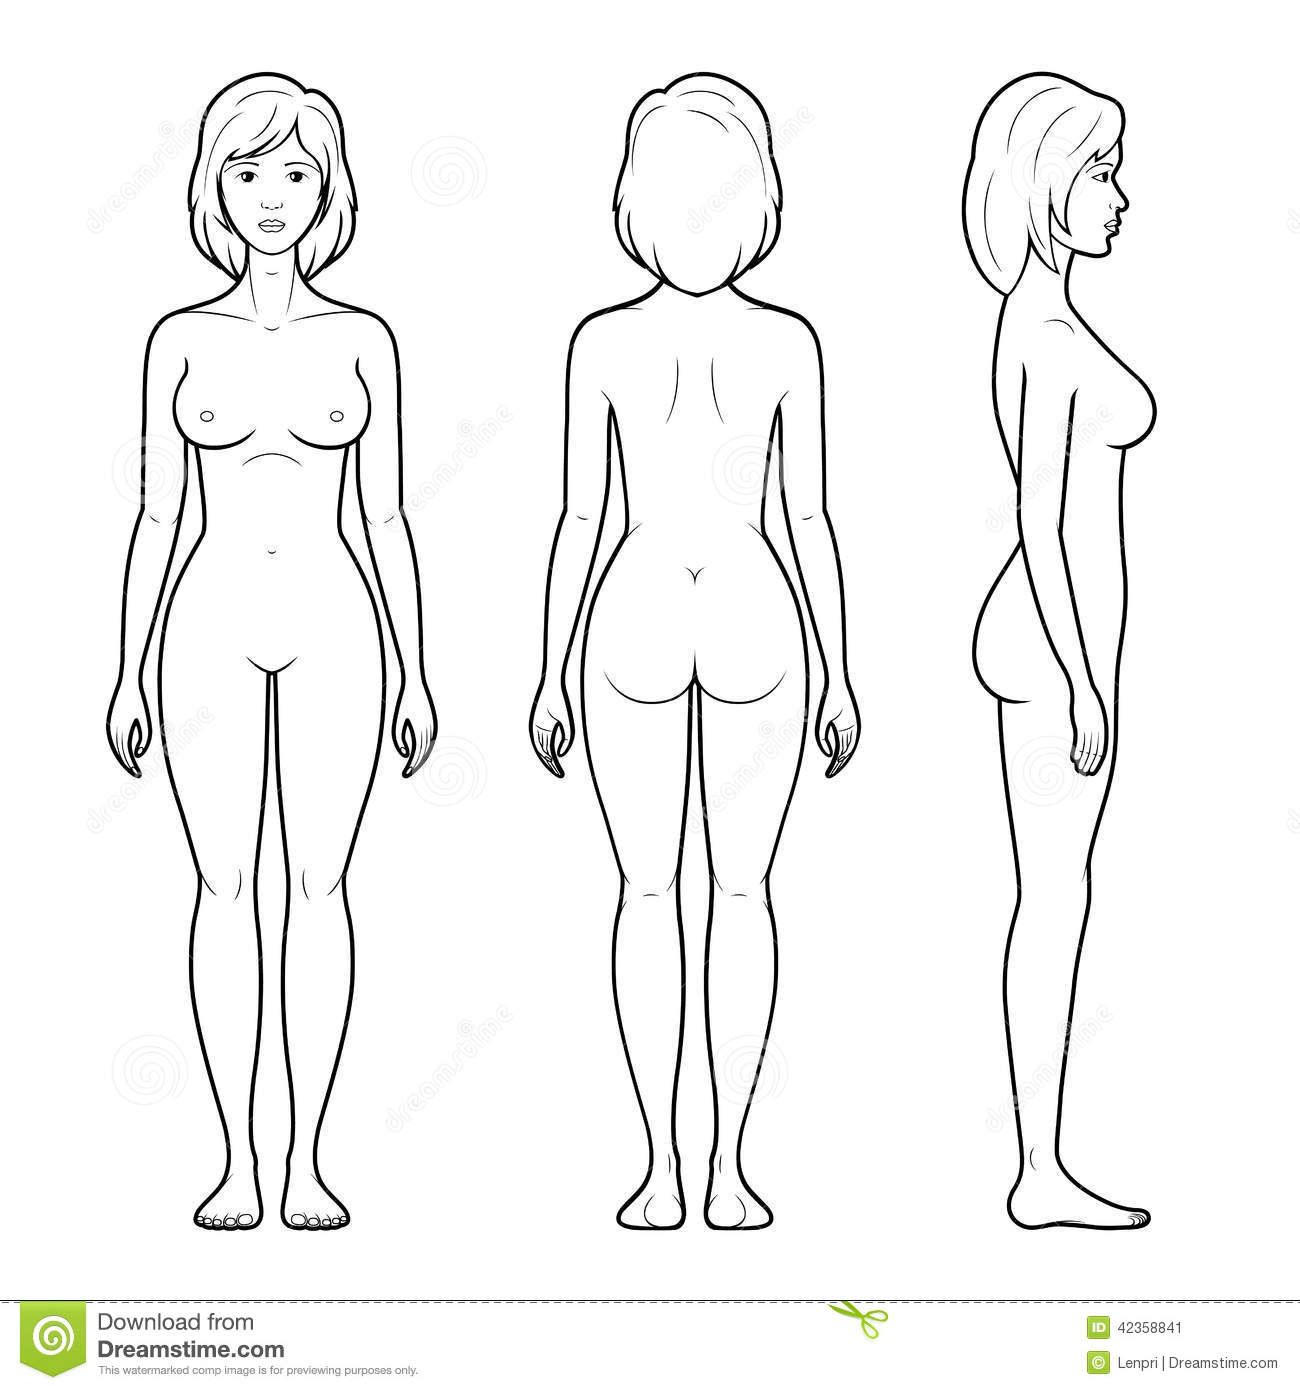 Massage clipart body outline. Images for female human